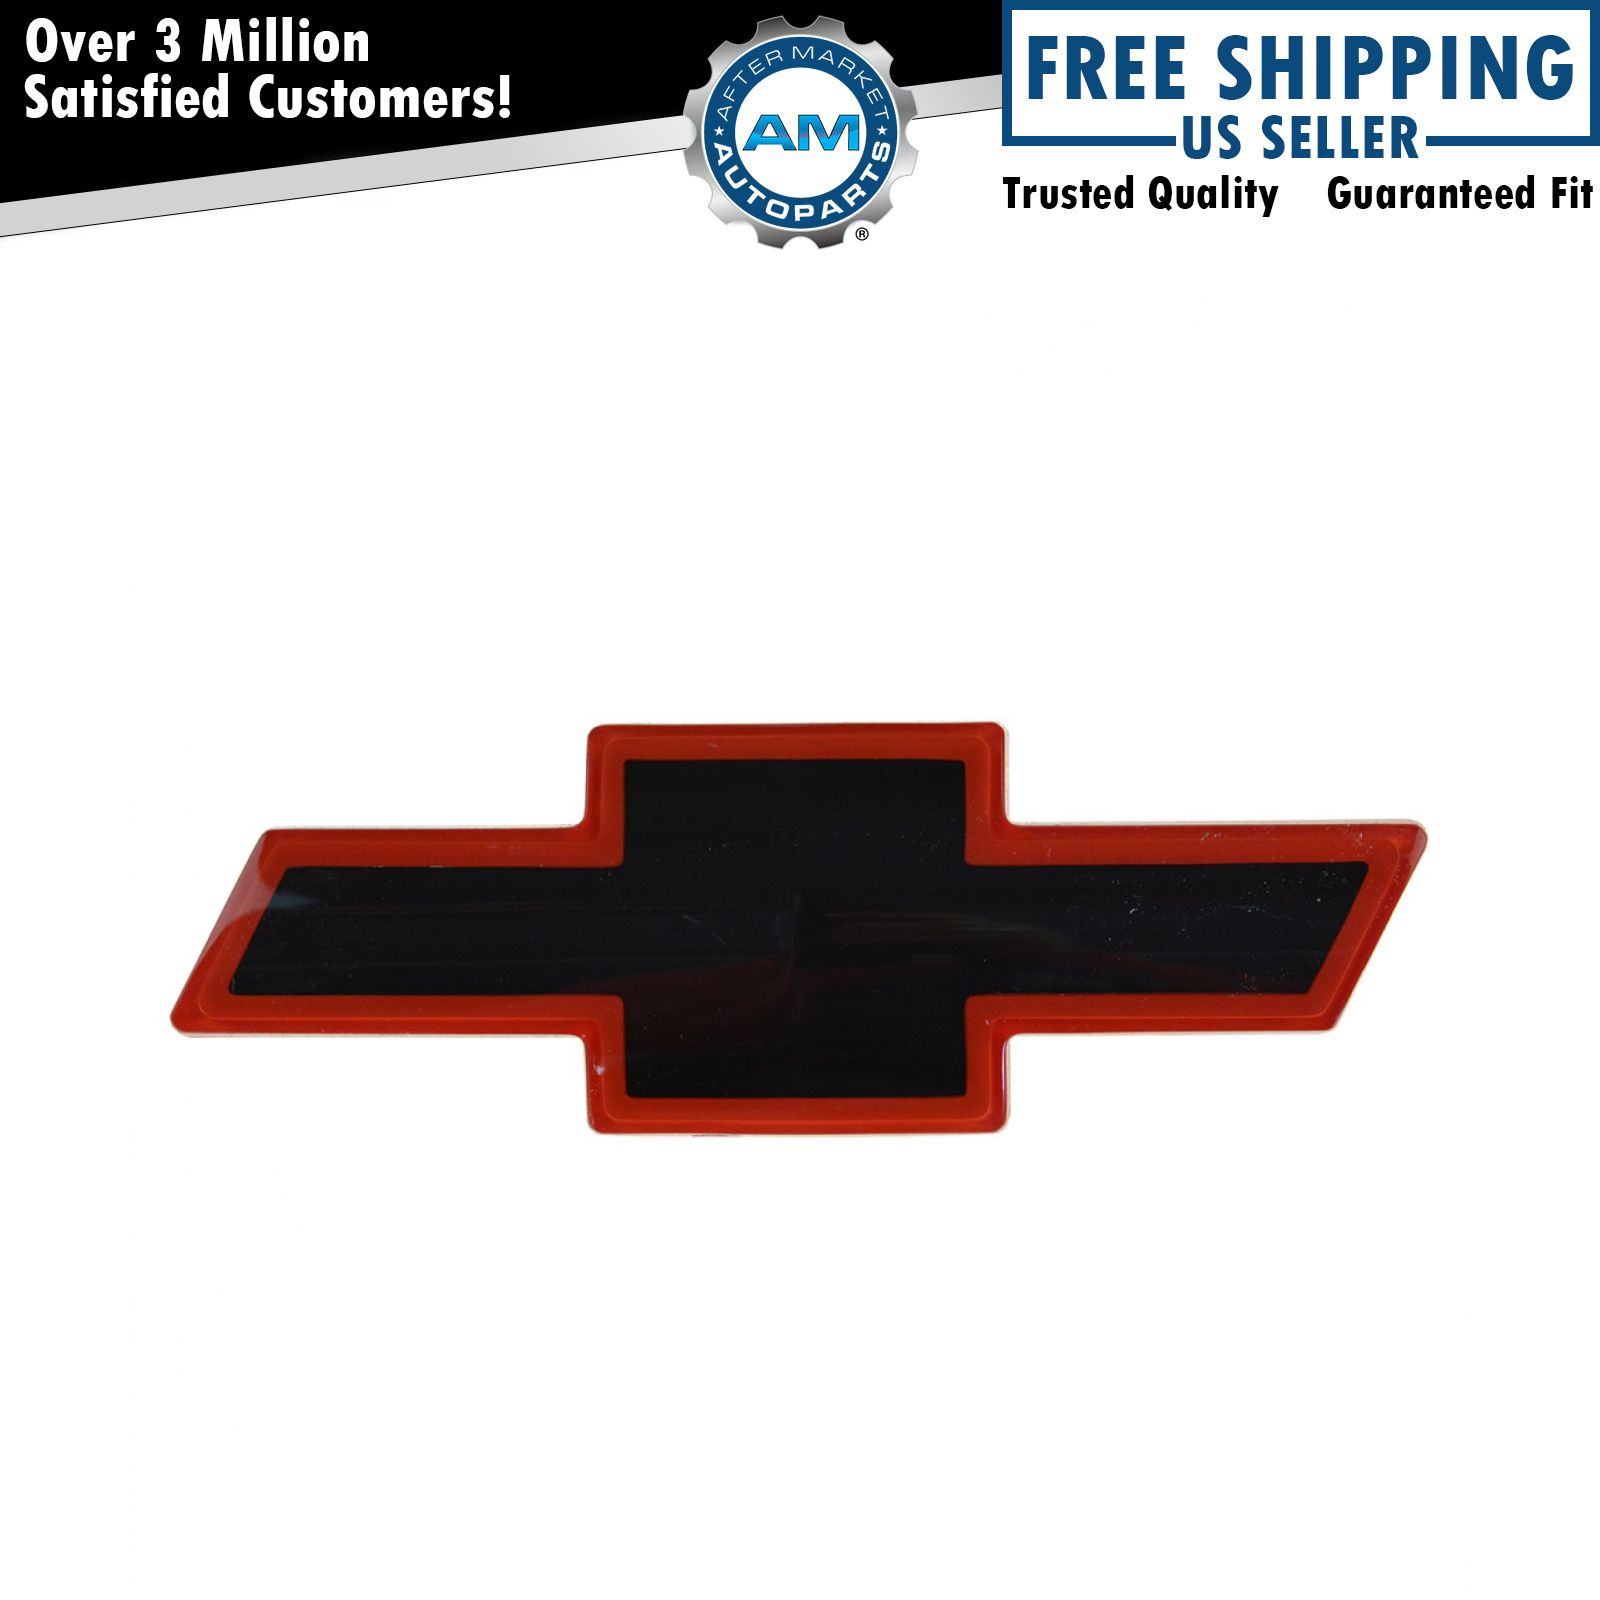 All Chevy black chevy symbol : OEM 12543000 Grille Mounted Black & Red Bowtie Emblem for Chevy | eBay